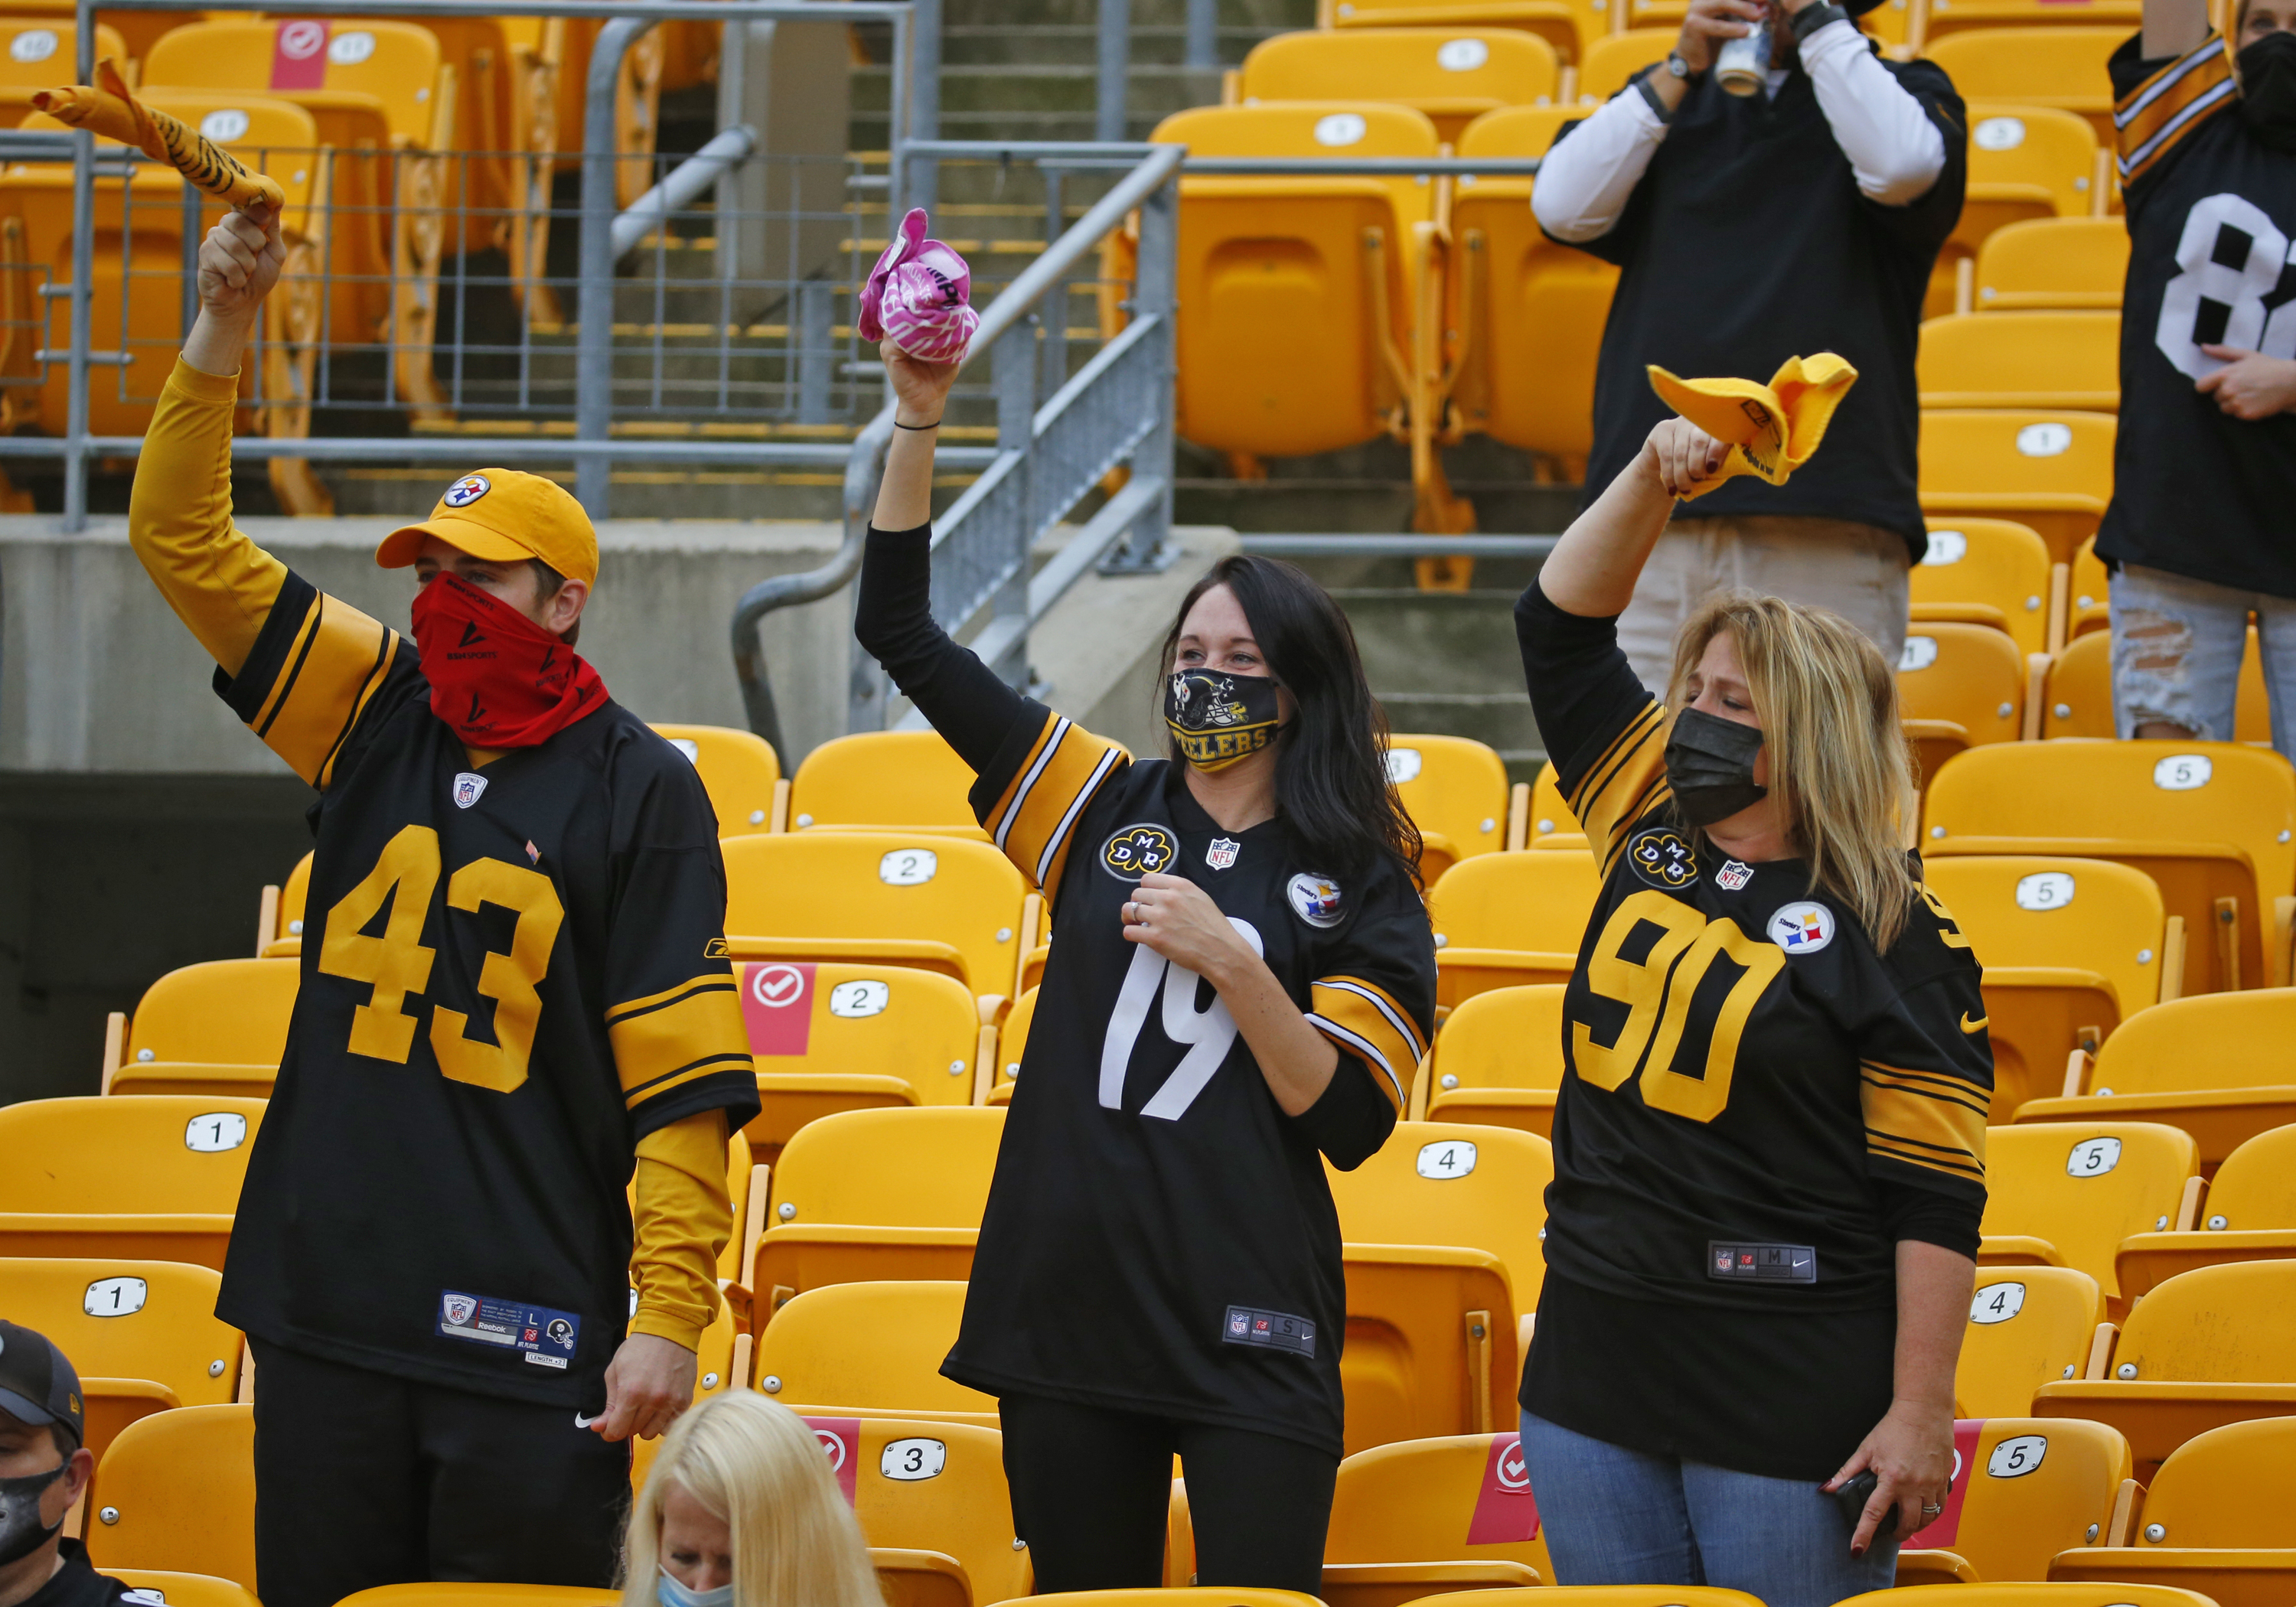 Pittsburgh Steelers fans cheer during a socially distanced game against the Eagles